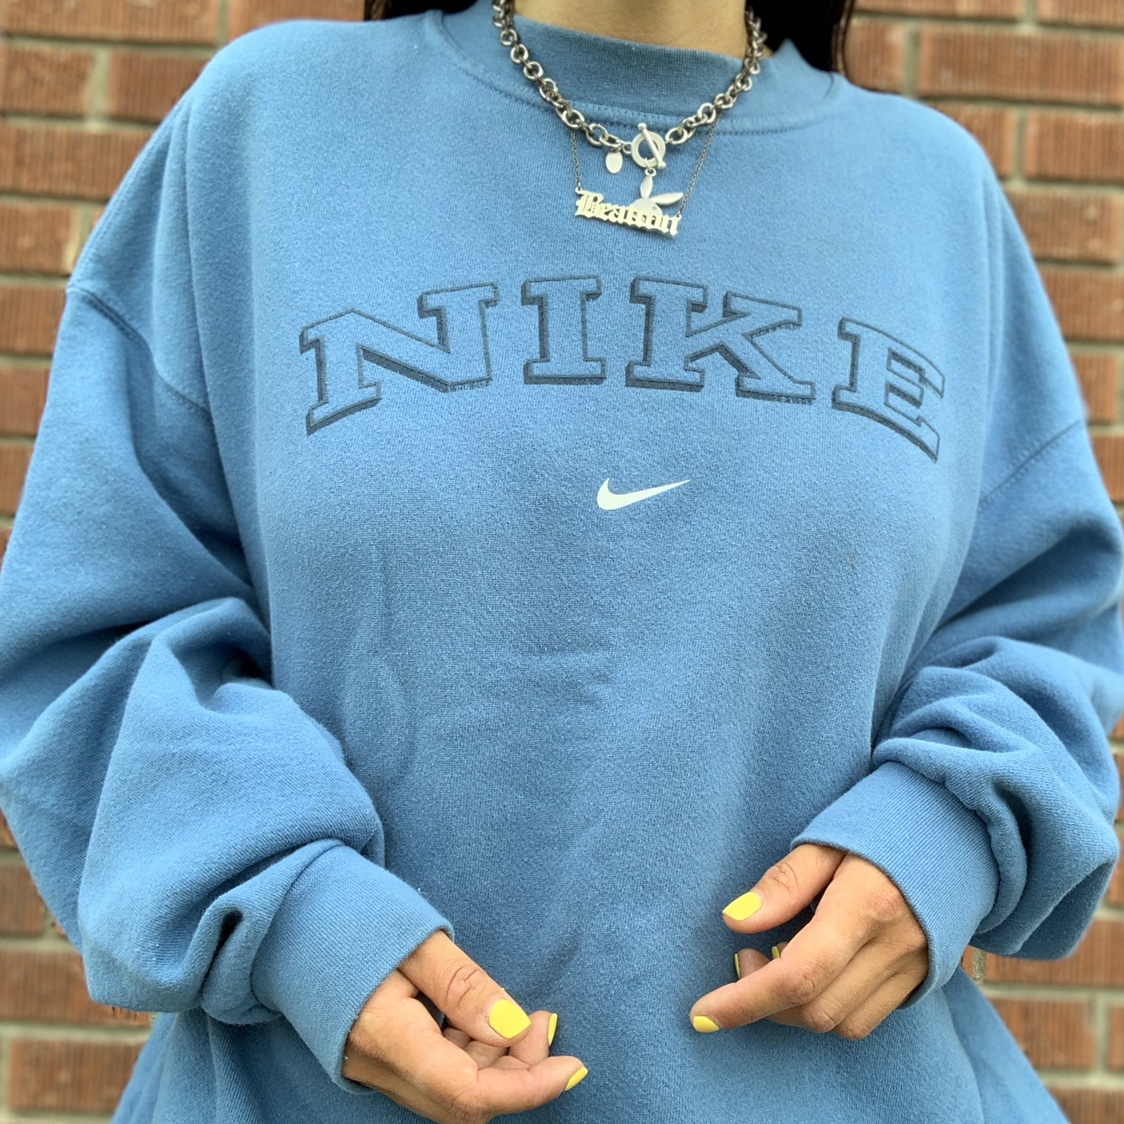 vintage 90s Nike crewneck sweater with spellout and Depop